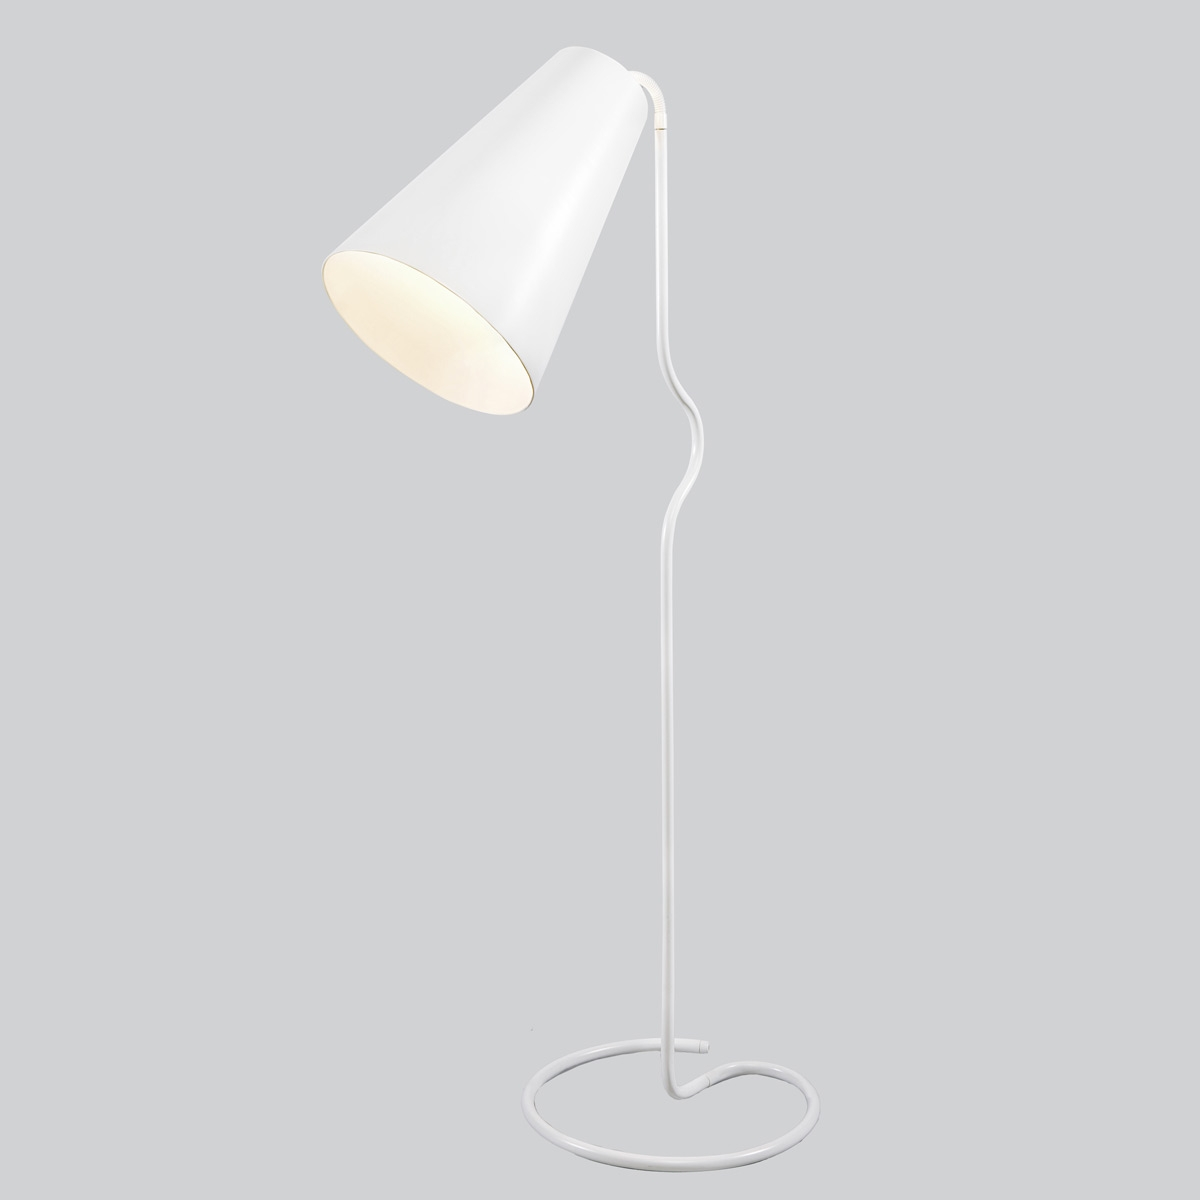 Lampe sur pied design bender northern lighting for Lampe a pied design